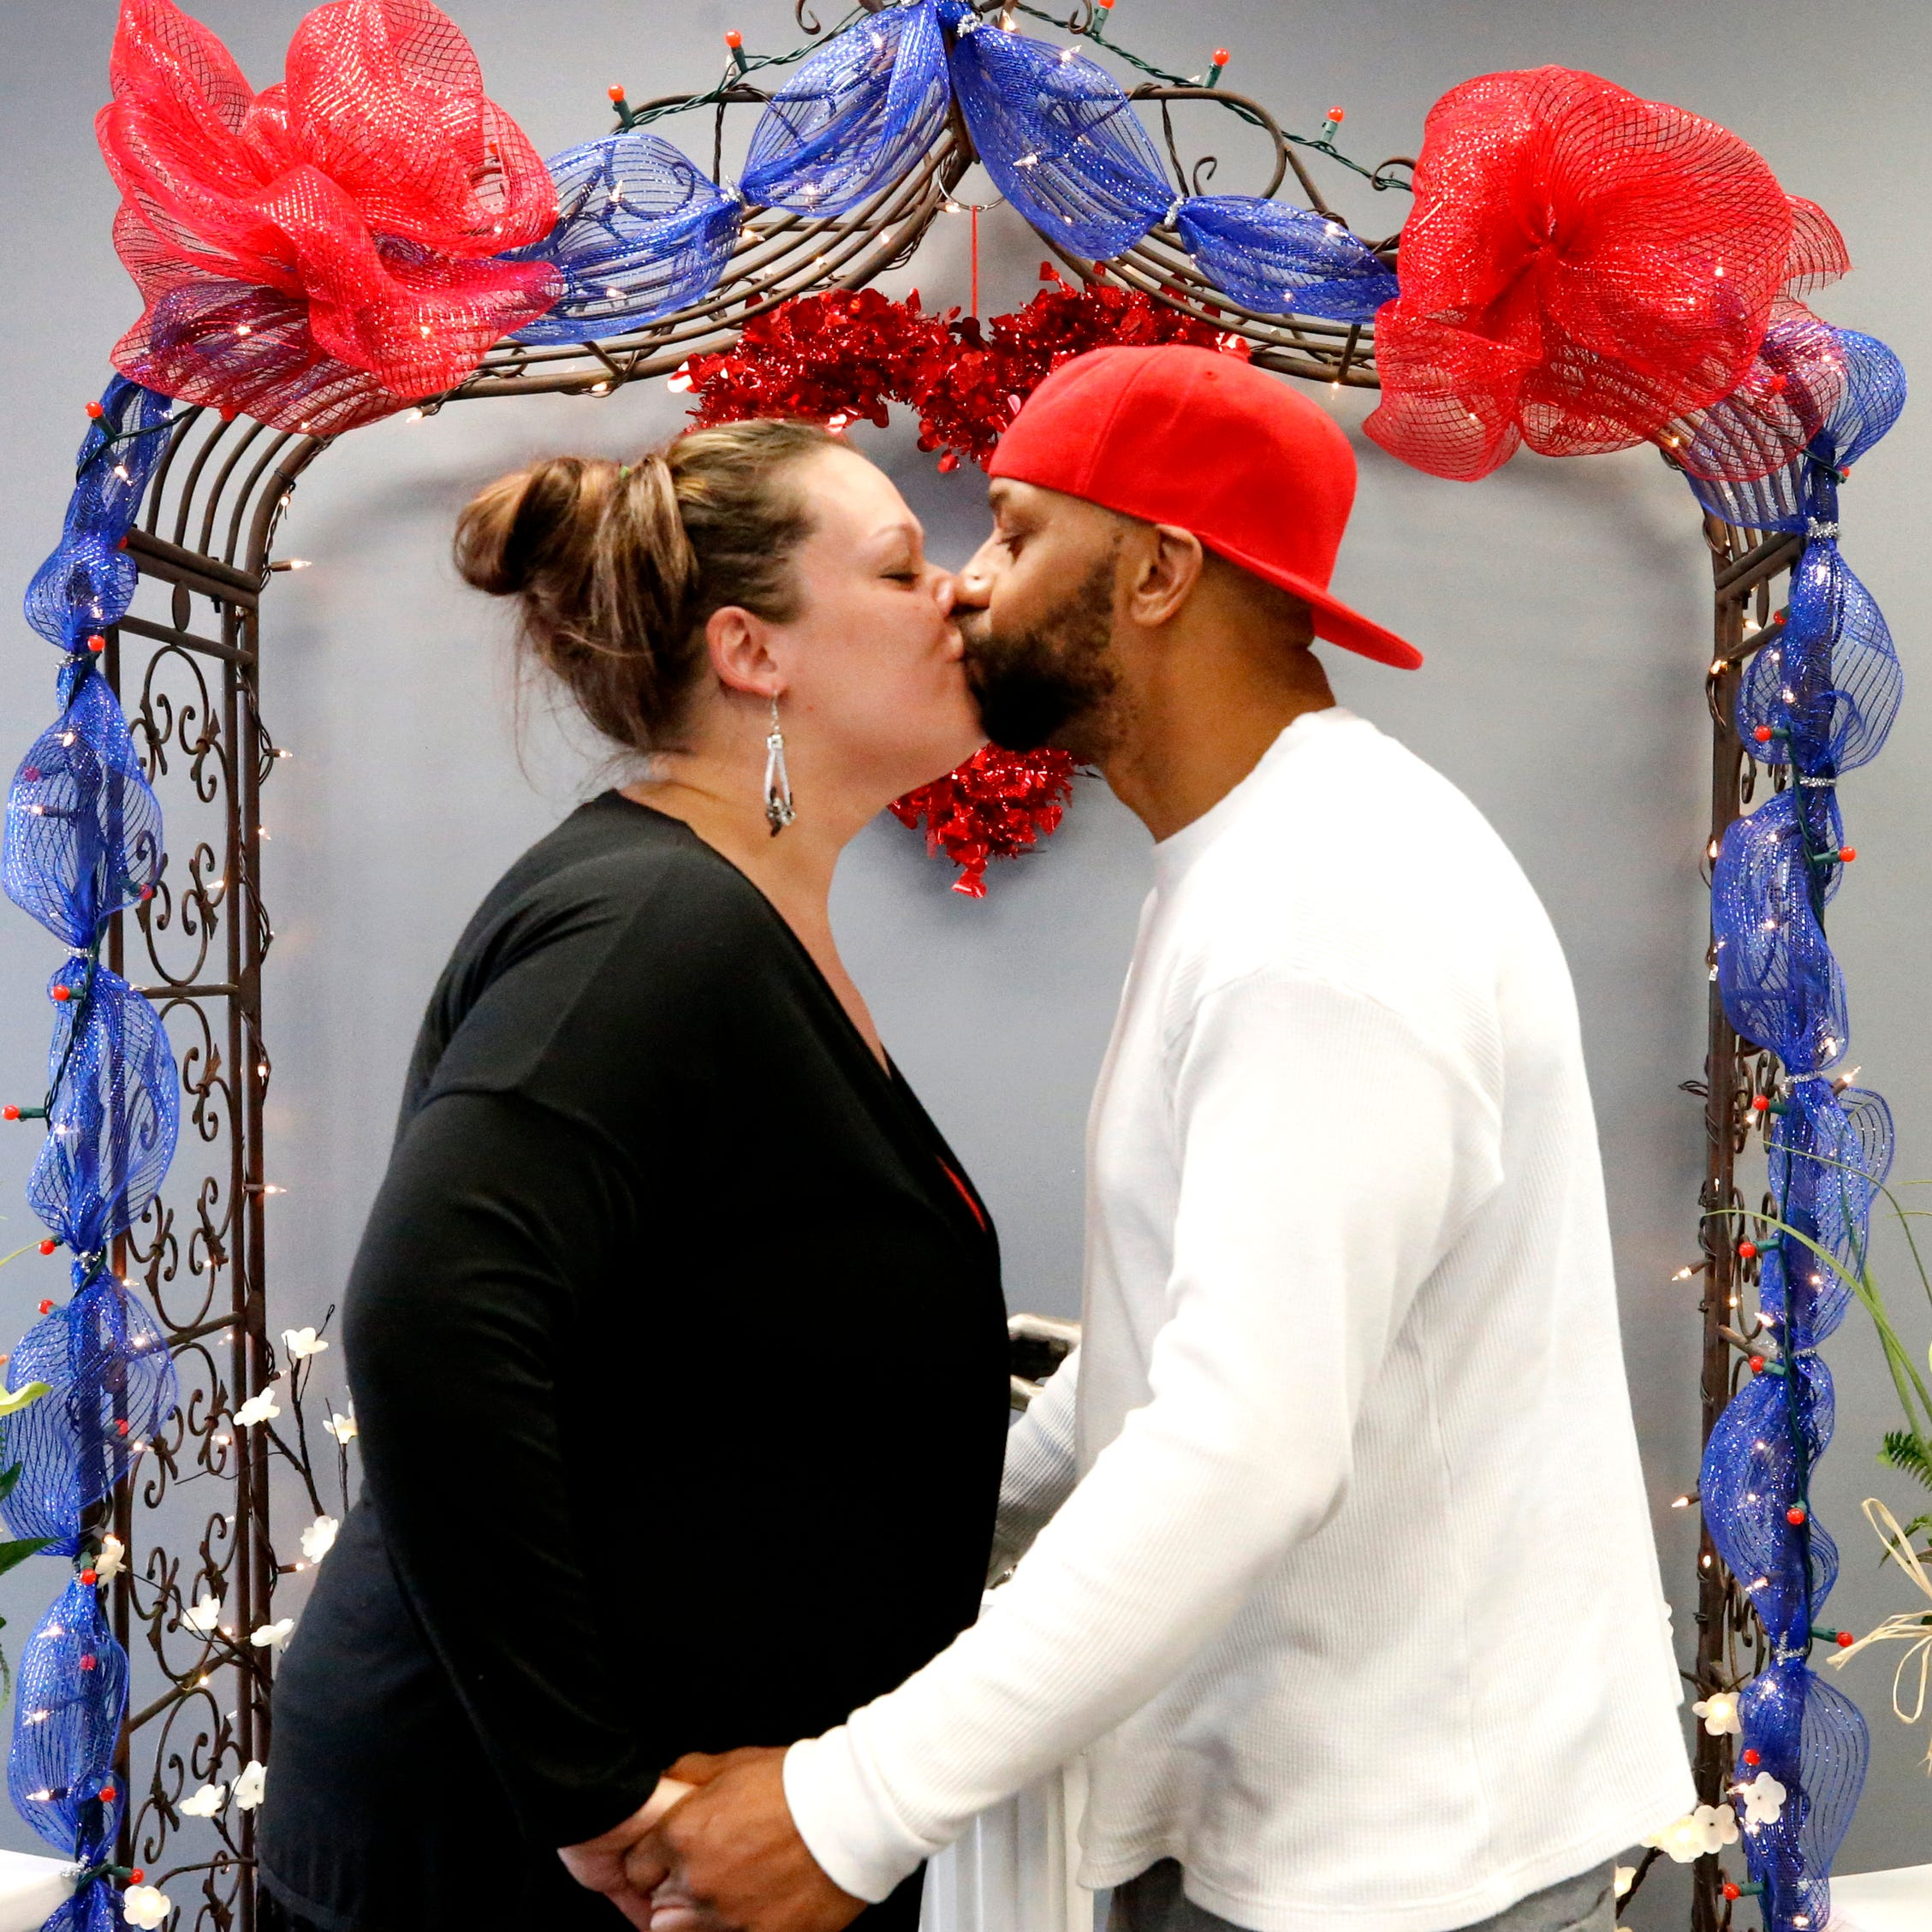 Valentine's Day ceremony: 'He can't forget our anniversary,' bride jokes